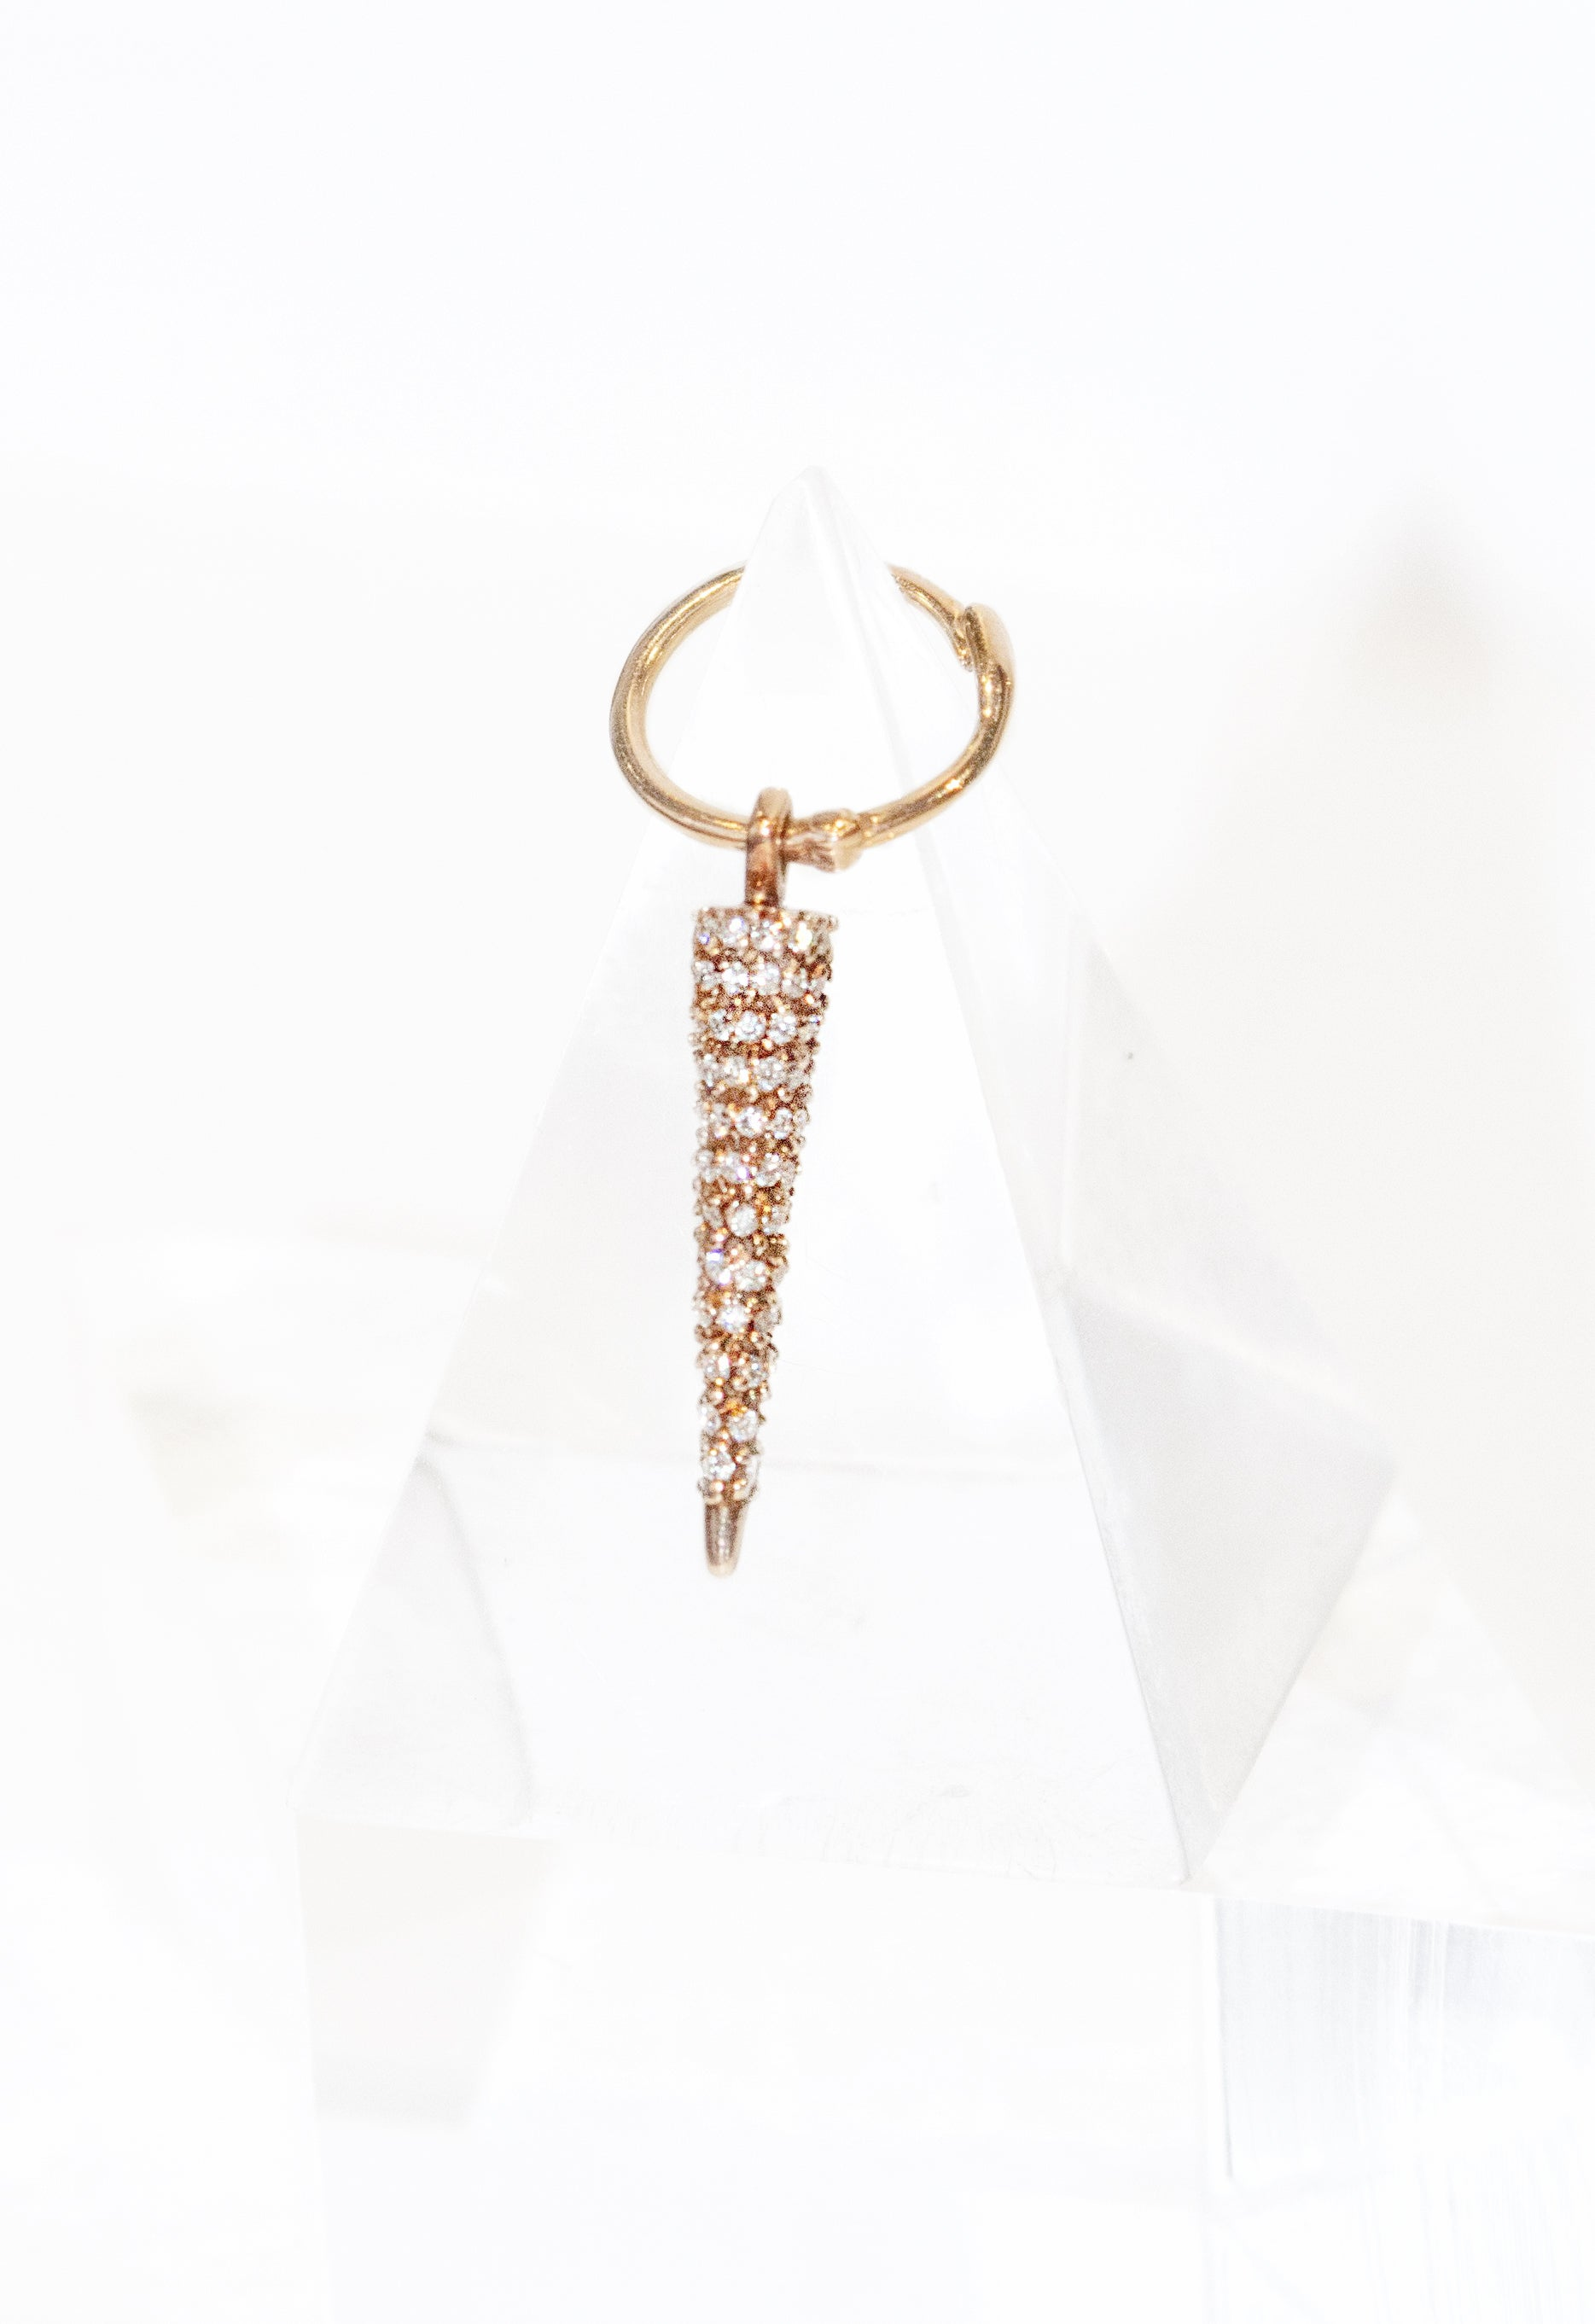 Micro Pave 92 Diamond Cone Spike Charm on 12mm Hoop Single Earring